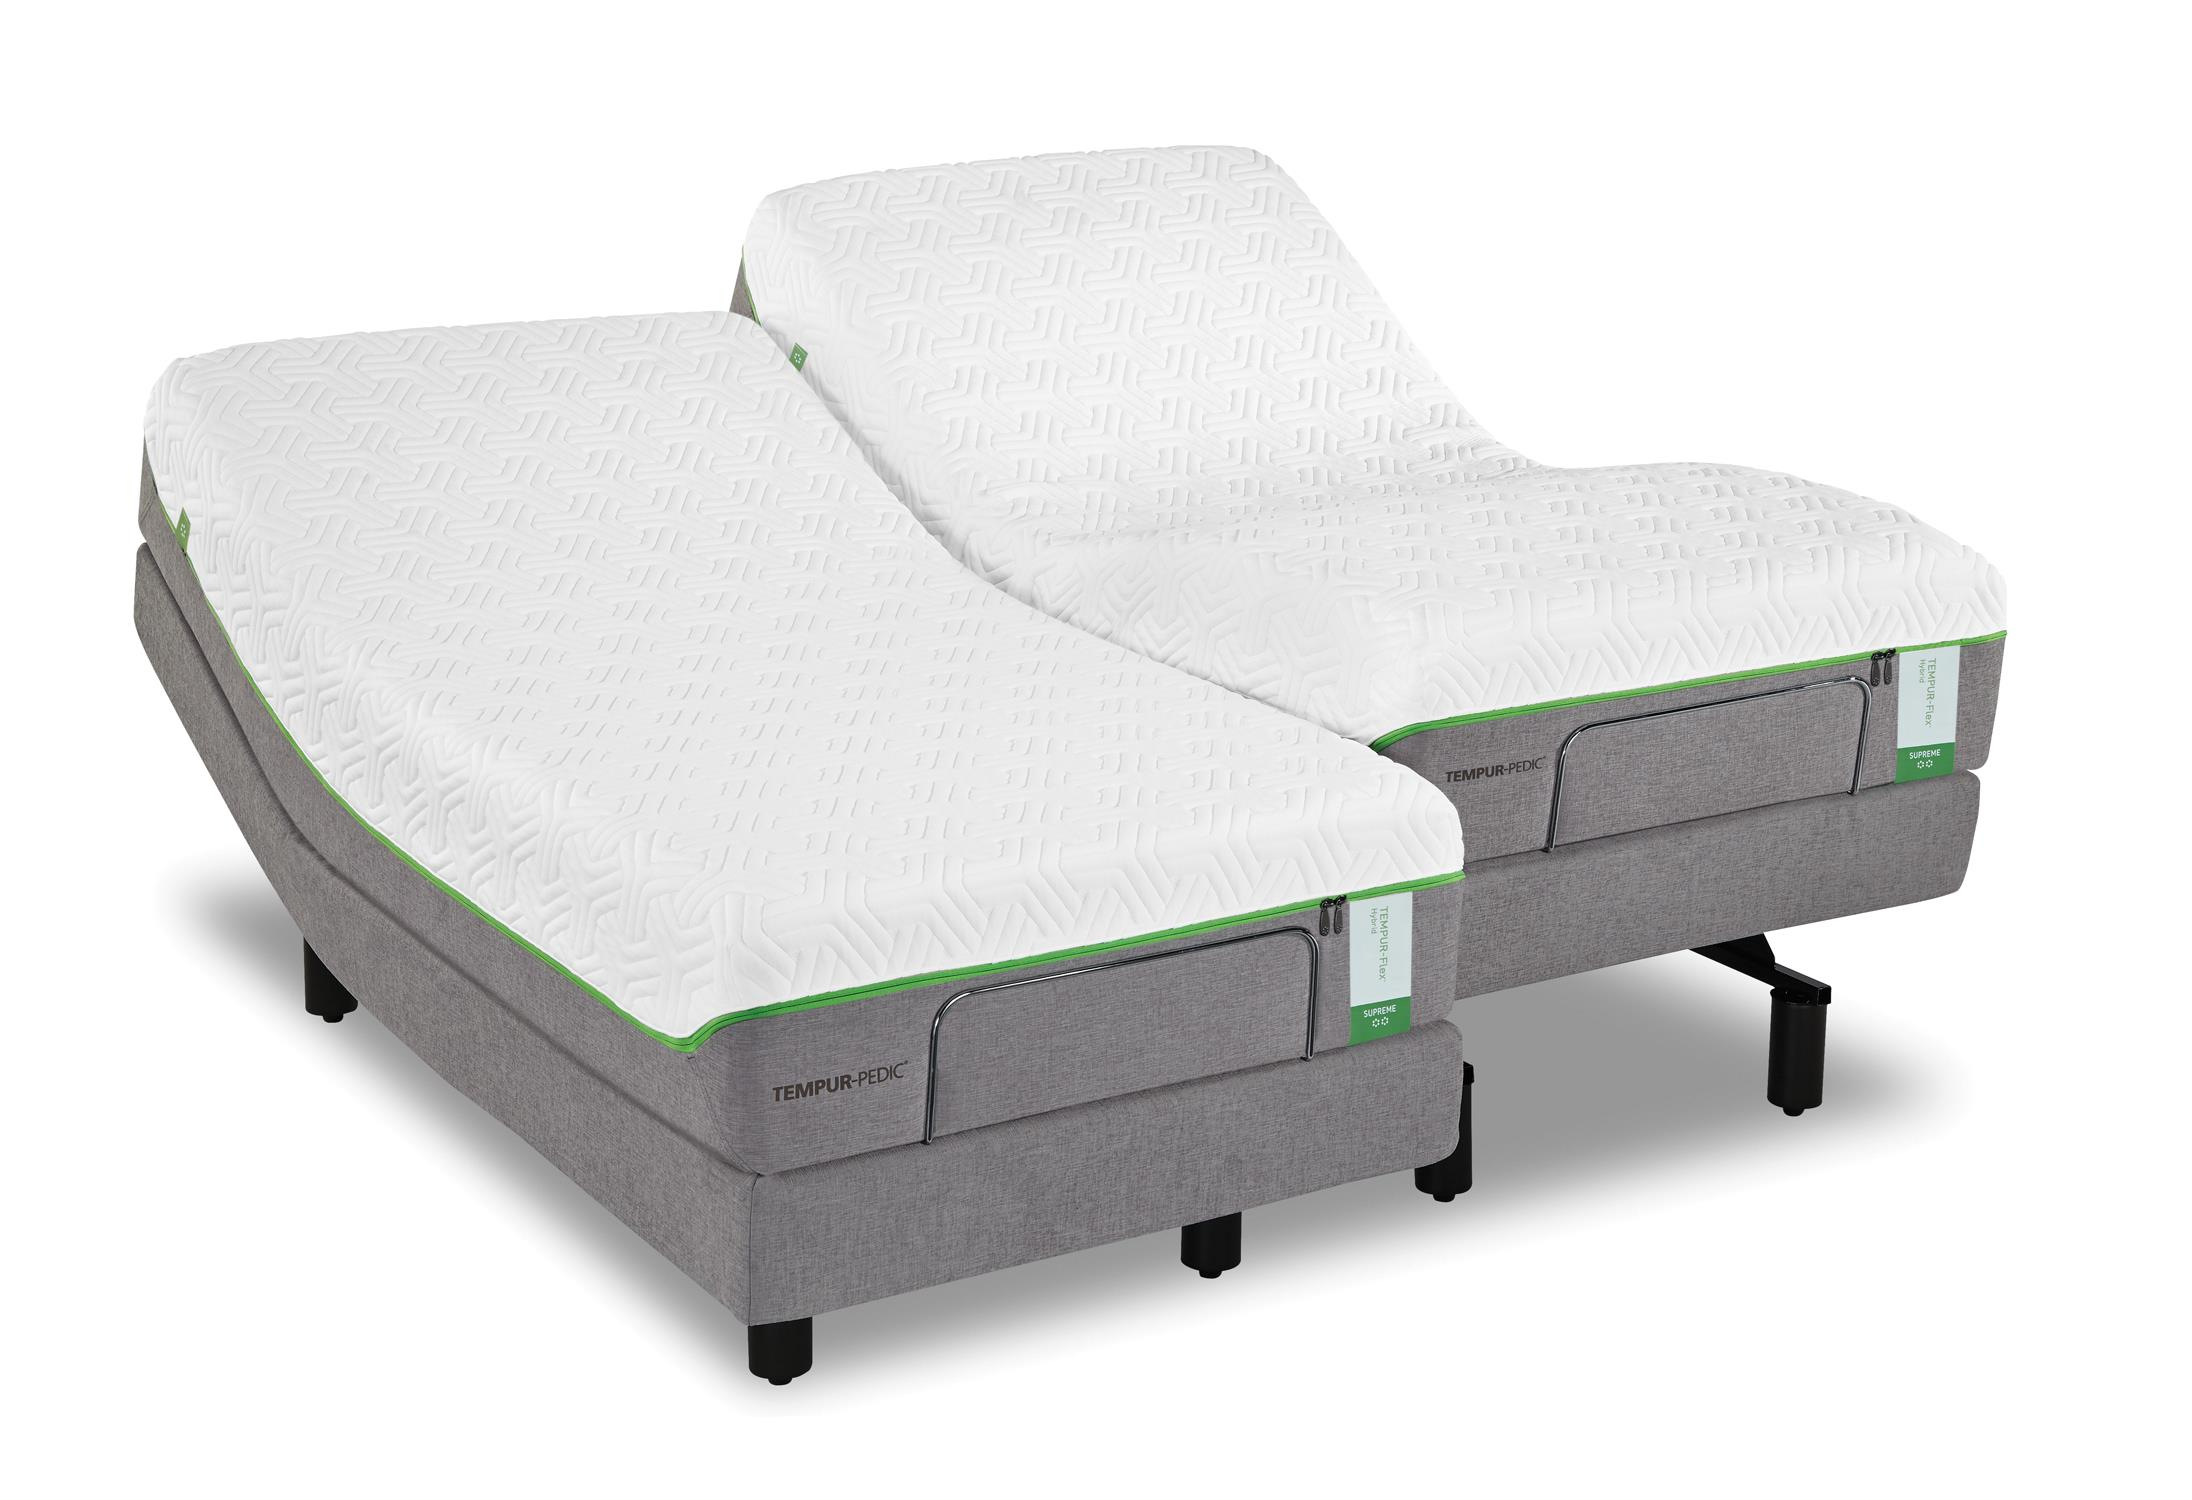 Stylish White Gray Tempurpedic Adjustable Base Design With Black Metal  Beamds